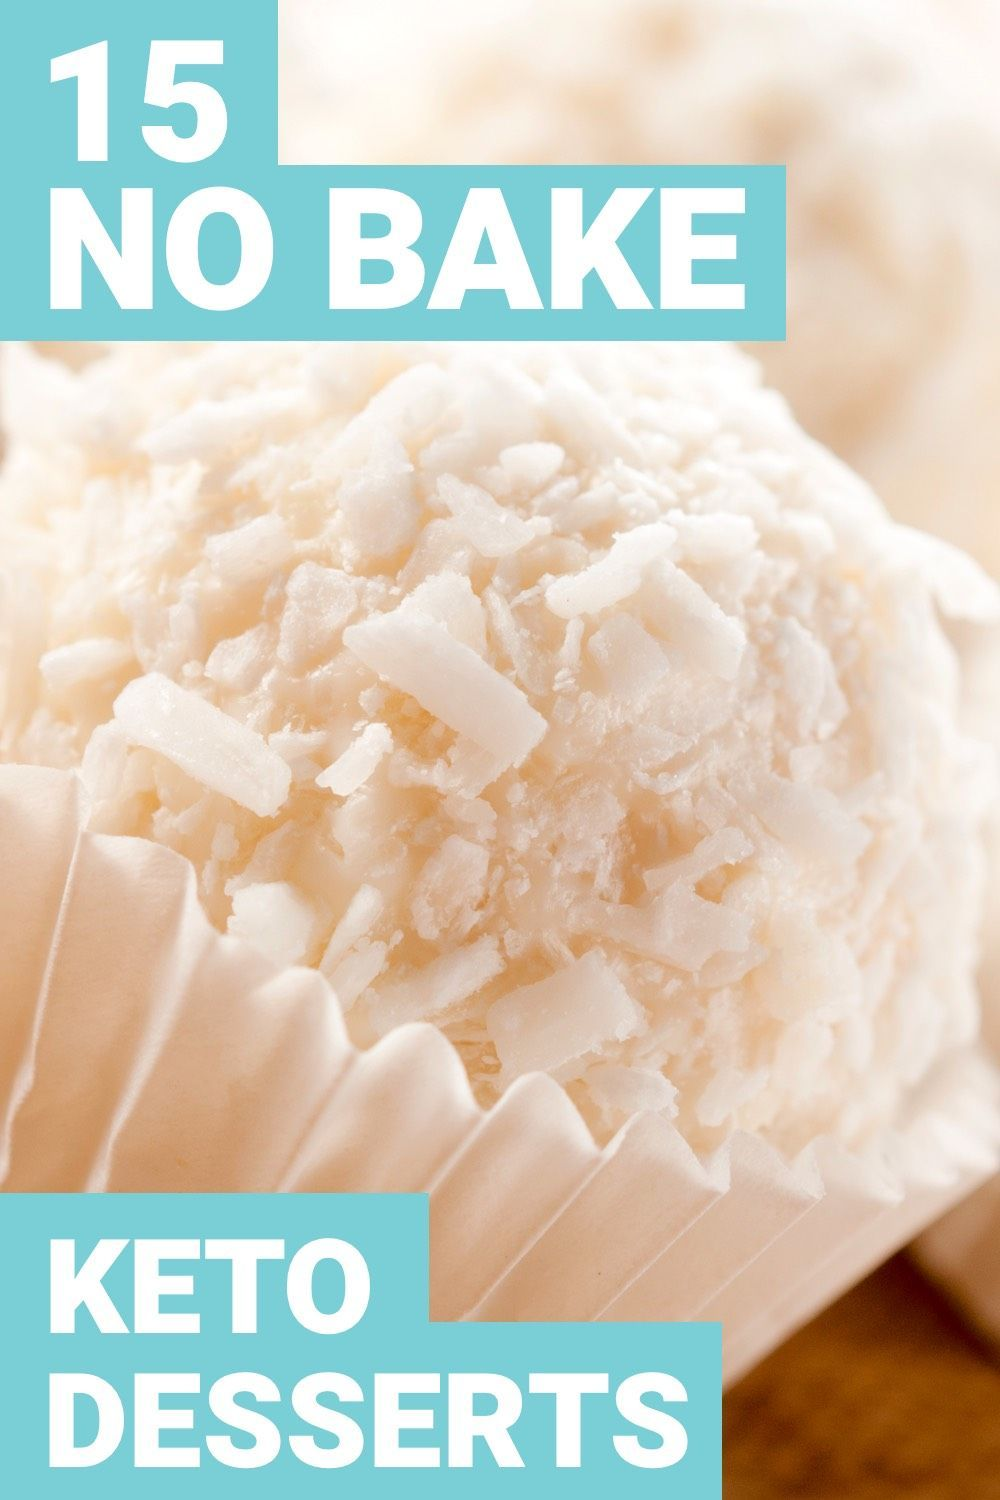 Keto Desserts: 15 Tasty No-Bake Keto Desserts You'll Want -  Keto desserts are a great way to stay on track with the ketogenic diet but keeping you in ketosis w - #desserts #Keto #NoBake #tasty #Youll